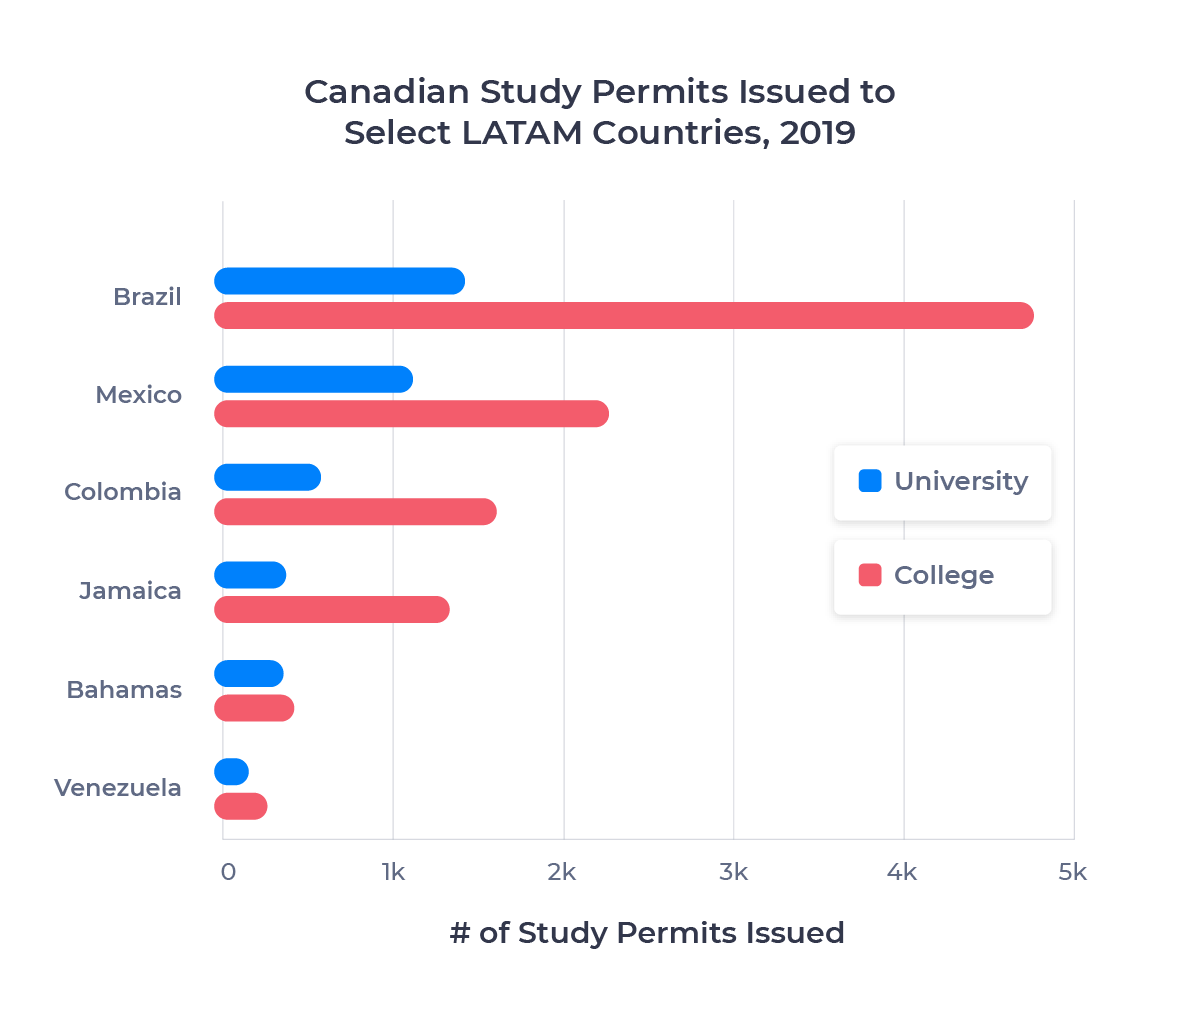 Bar chart showing the number of Canadian study permits issued to six LATAM countries in 2019 for college and university study. Described in detail below.